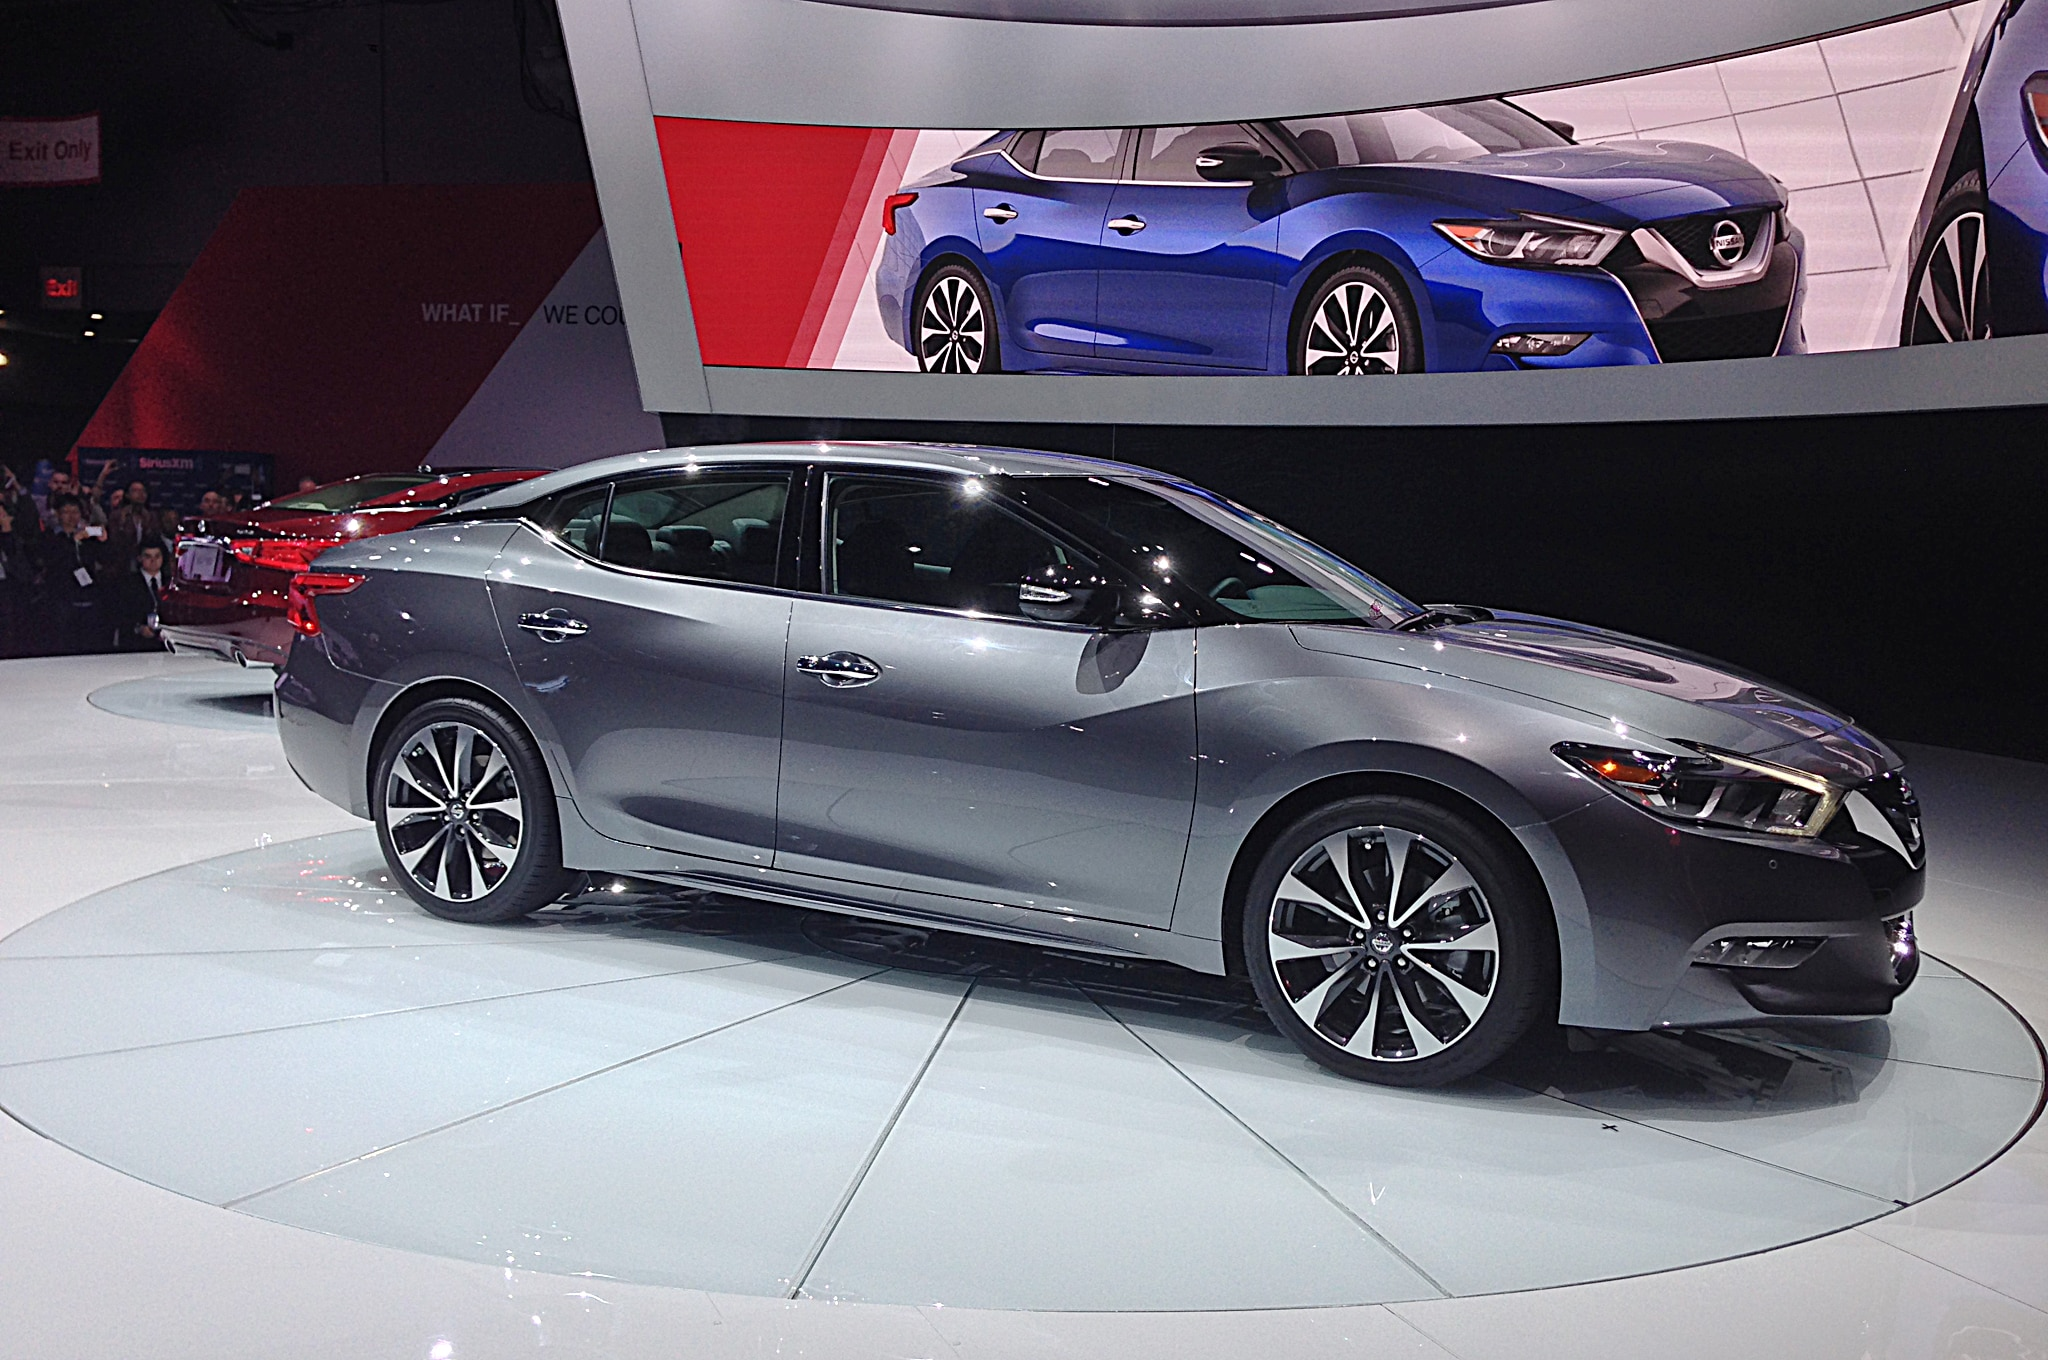 2016 nissan maxima debuts in new york, priced at $33,235